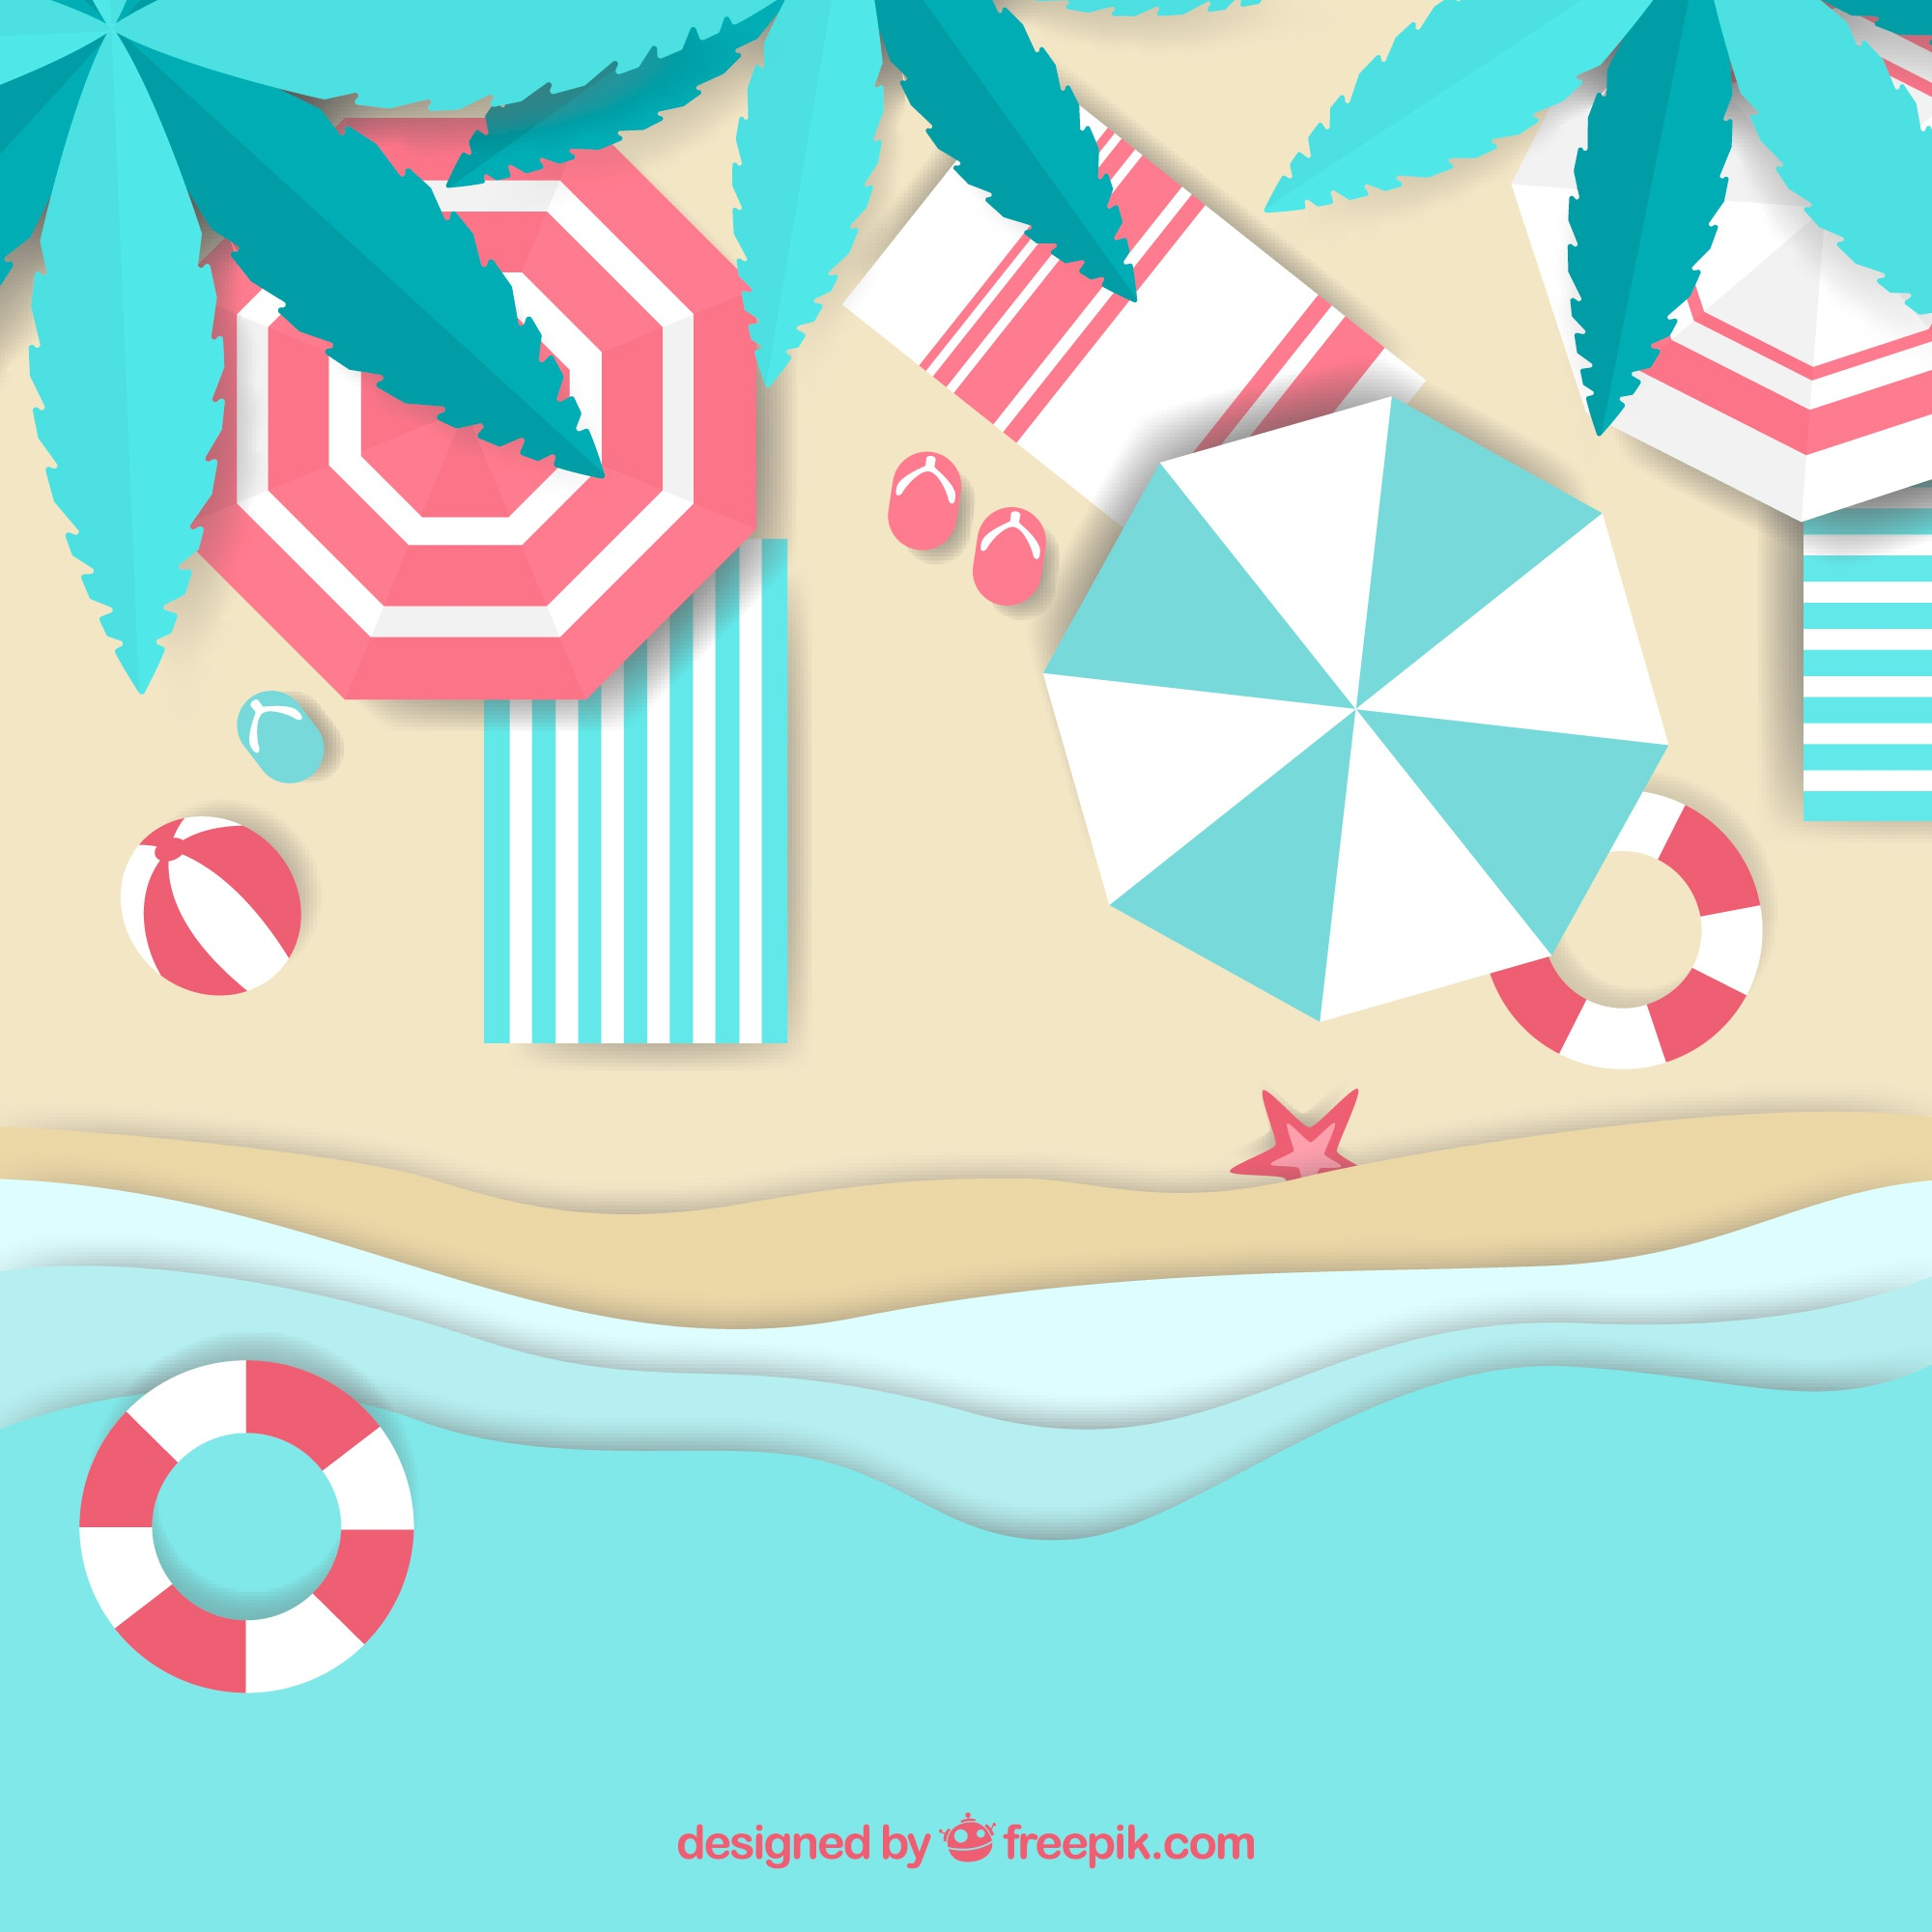 Beach from the top in paper style